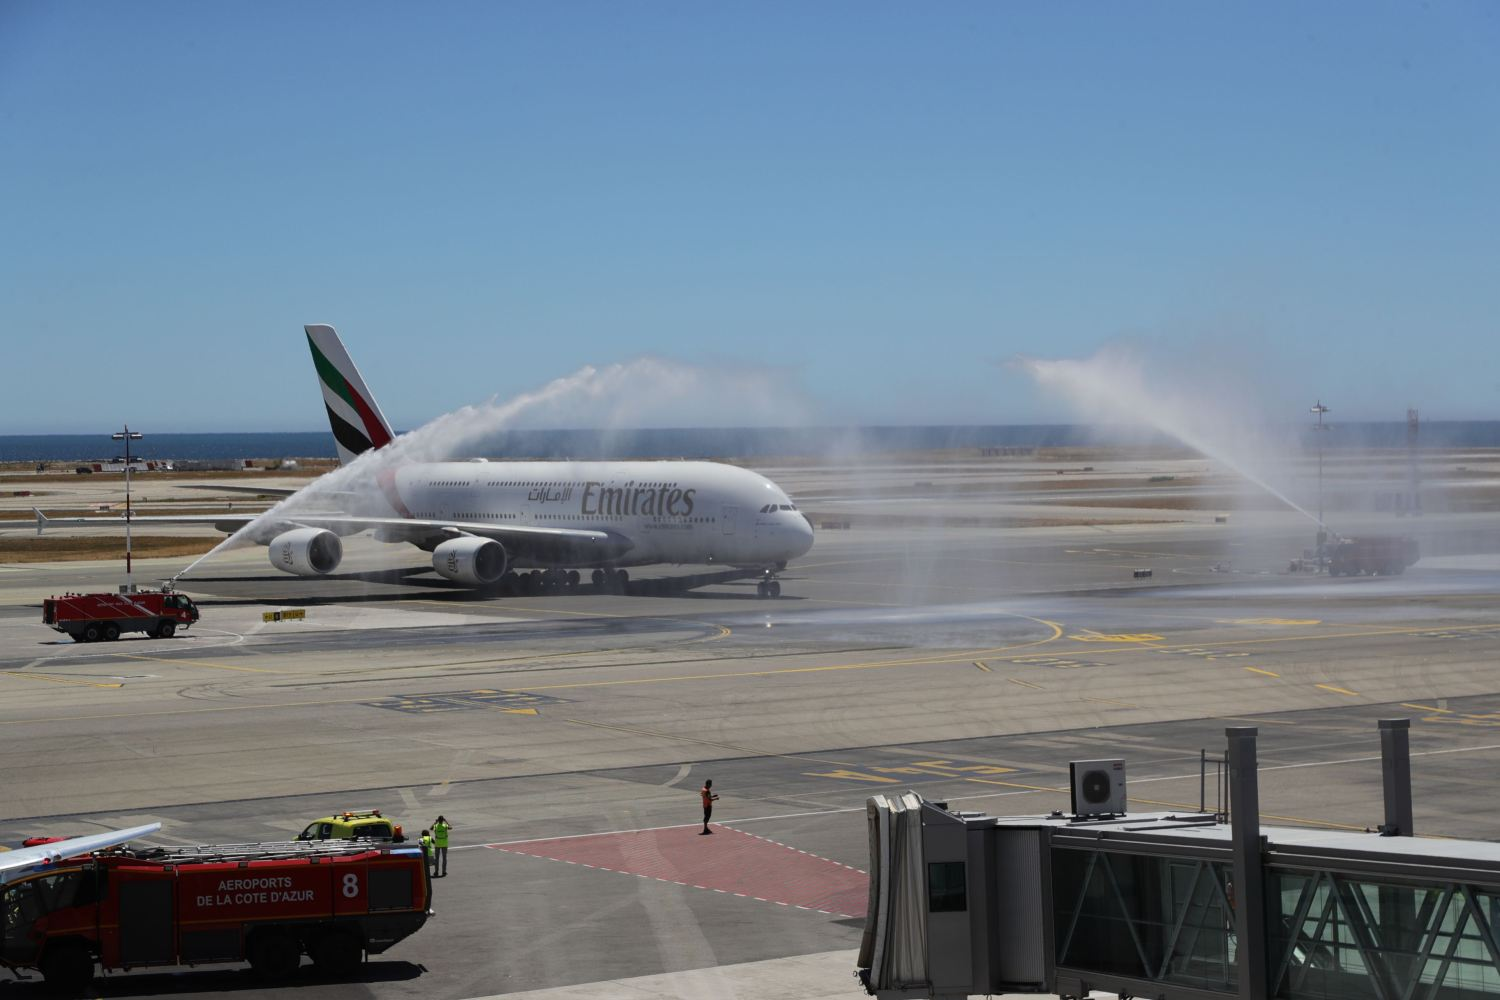 The Emirates A380 being welcomed at Nice Airport with a traditional water cannon salute.